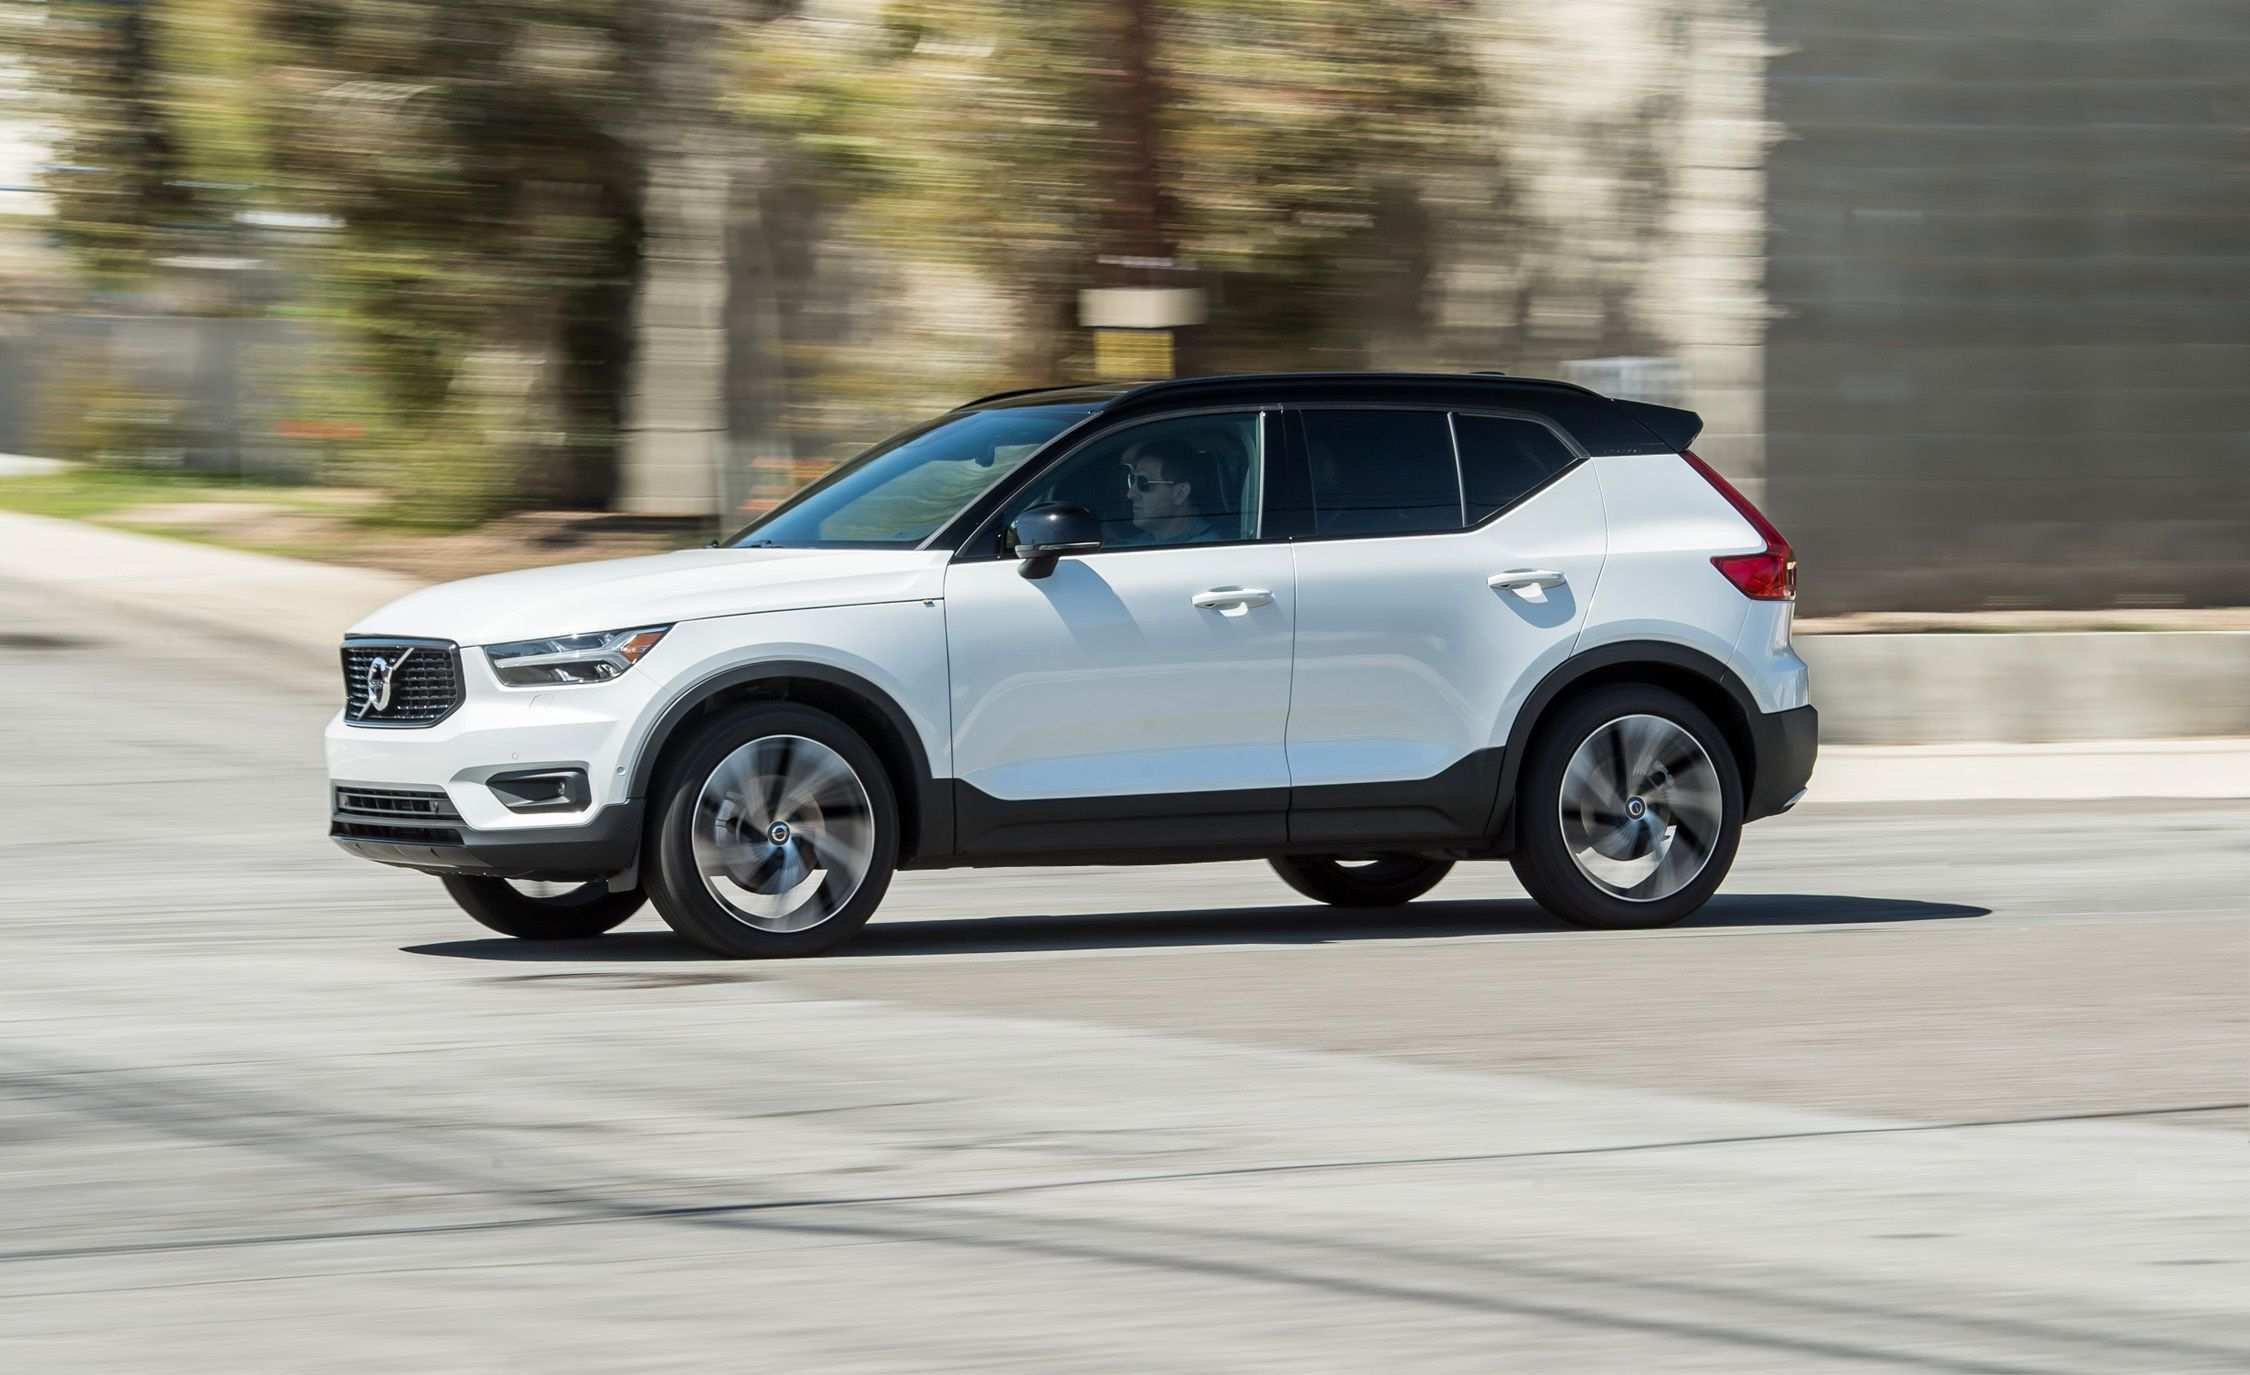 82 Concept of Volvo Xc40 2020 Update Price with Volvo Xc40 2020 Update